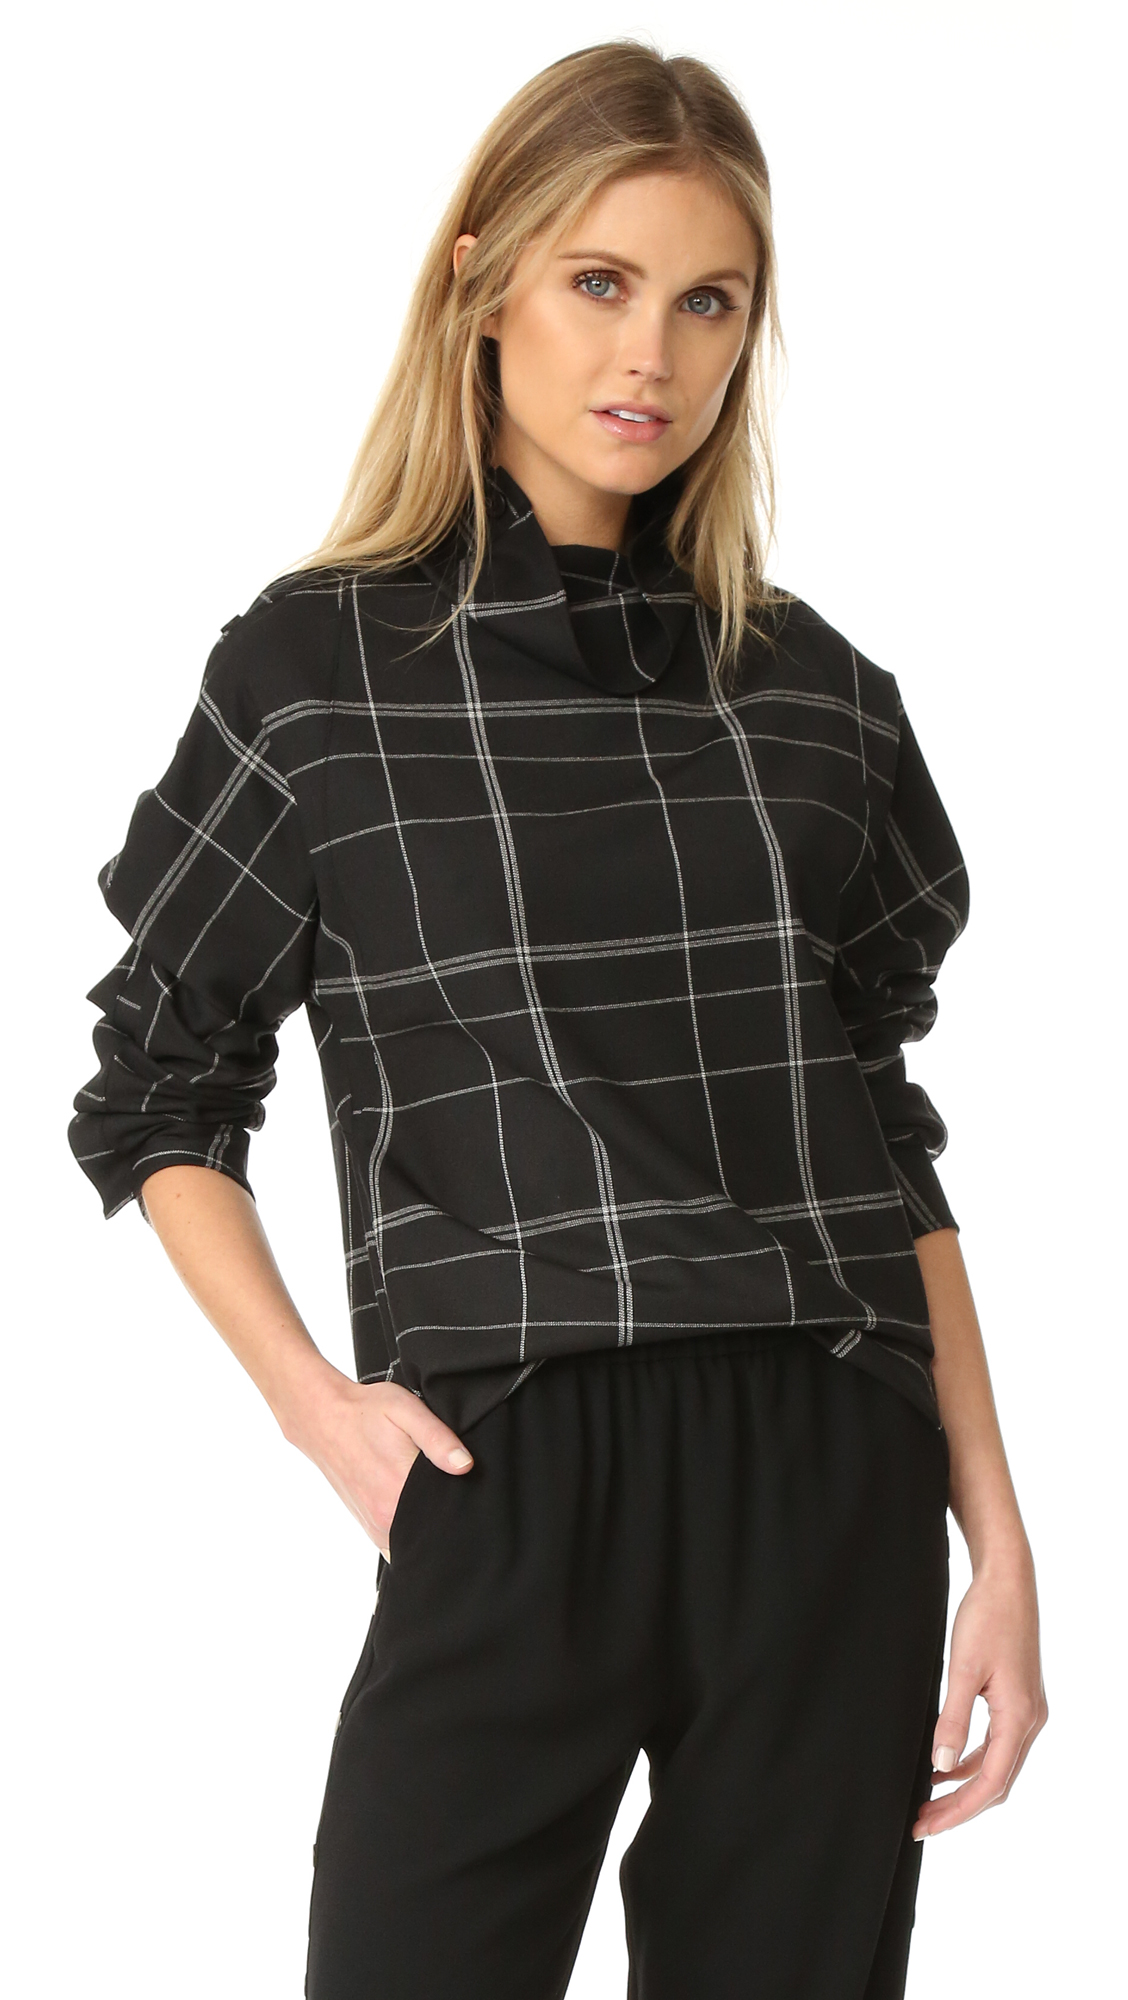 A sophisticated Theory tunic in a neutral check pattern. Buttons extend from the slouchy neckline to the long sleeves. Vented, uneven hem. Fabric: Suiting. 53% polyester/43% polyester/4% elastane. Dry clean. Imported, Vietnam. Measurements Length 1: 28in / 71cm, from